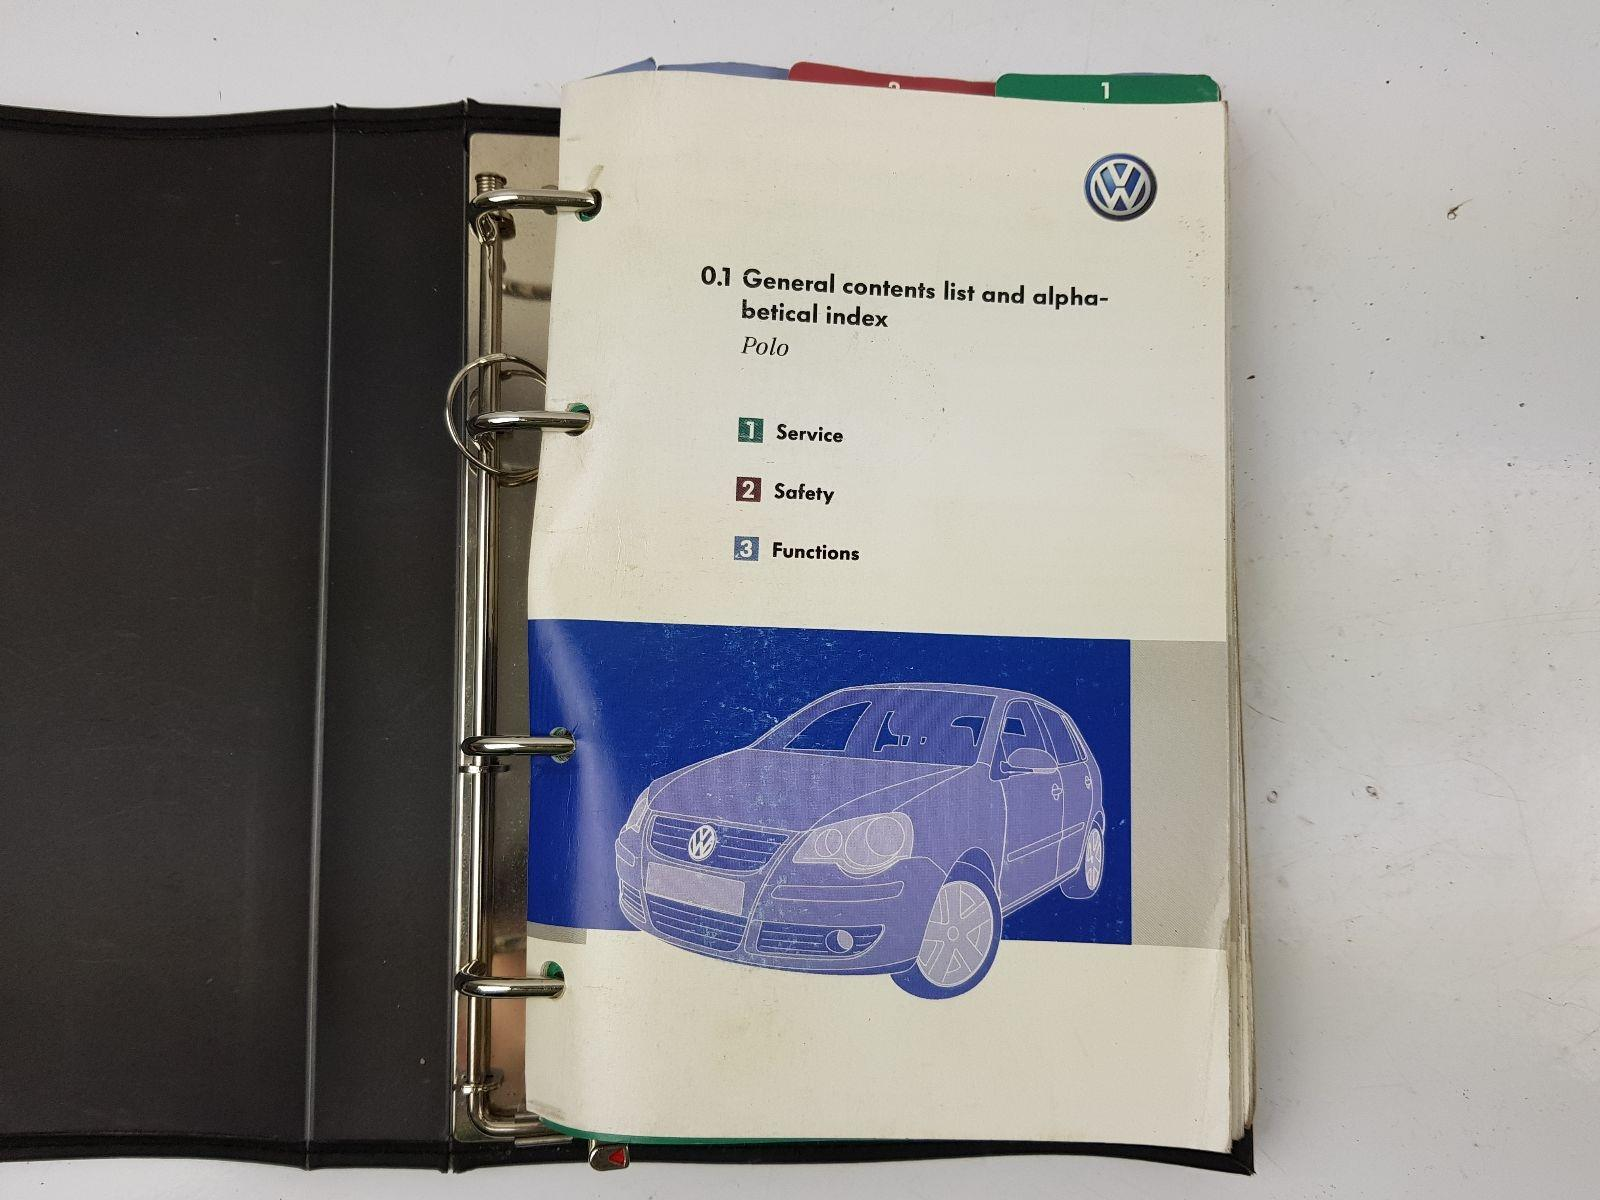 Vw Polo 2005 Owners Manual 2009 Suzuki Gsf1250sa Starter Motor Components And Parts Diagram Array Volkswagen To Book Pack Petrol For Sale Rh Scbvehicledismantlers Co